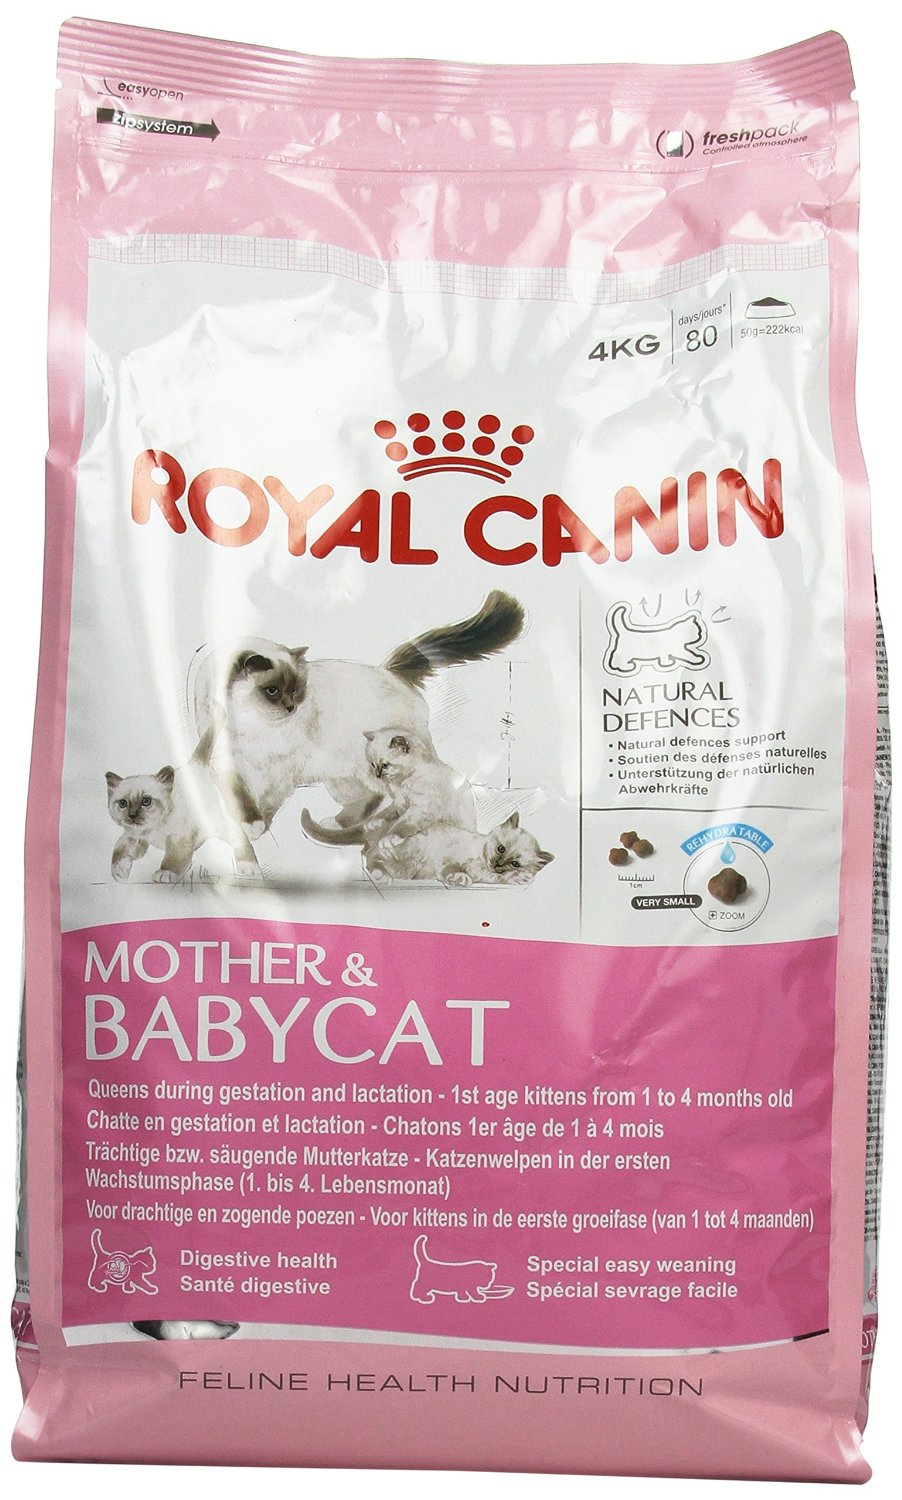 Royal Canin Babycat Dry Food (Unopened)